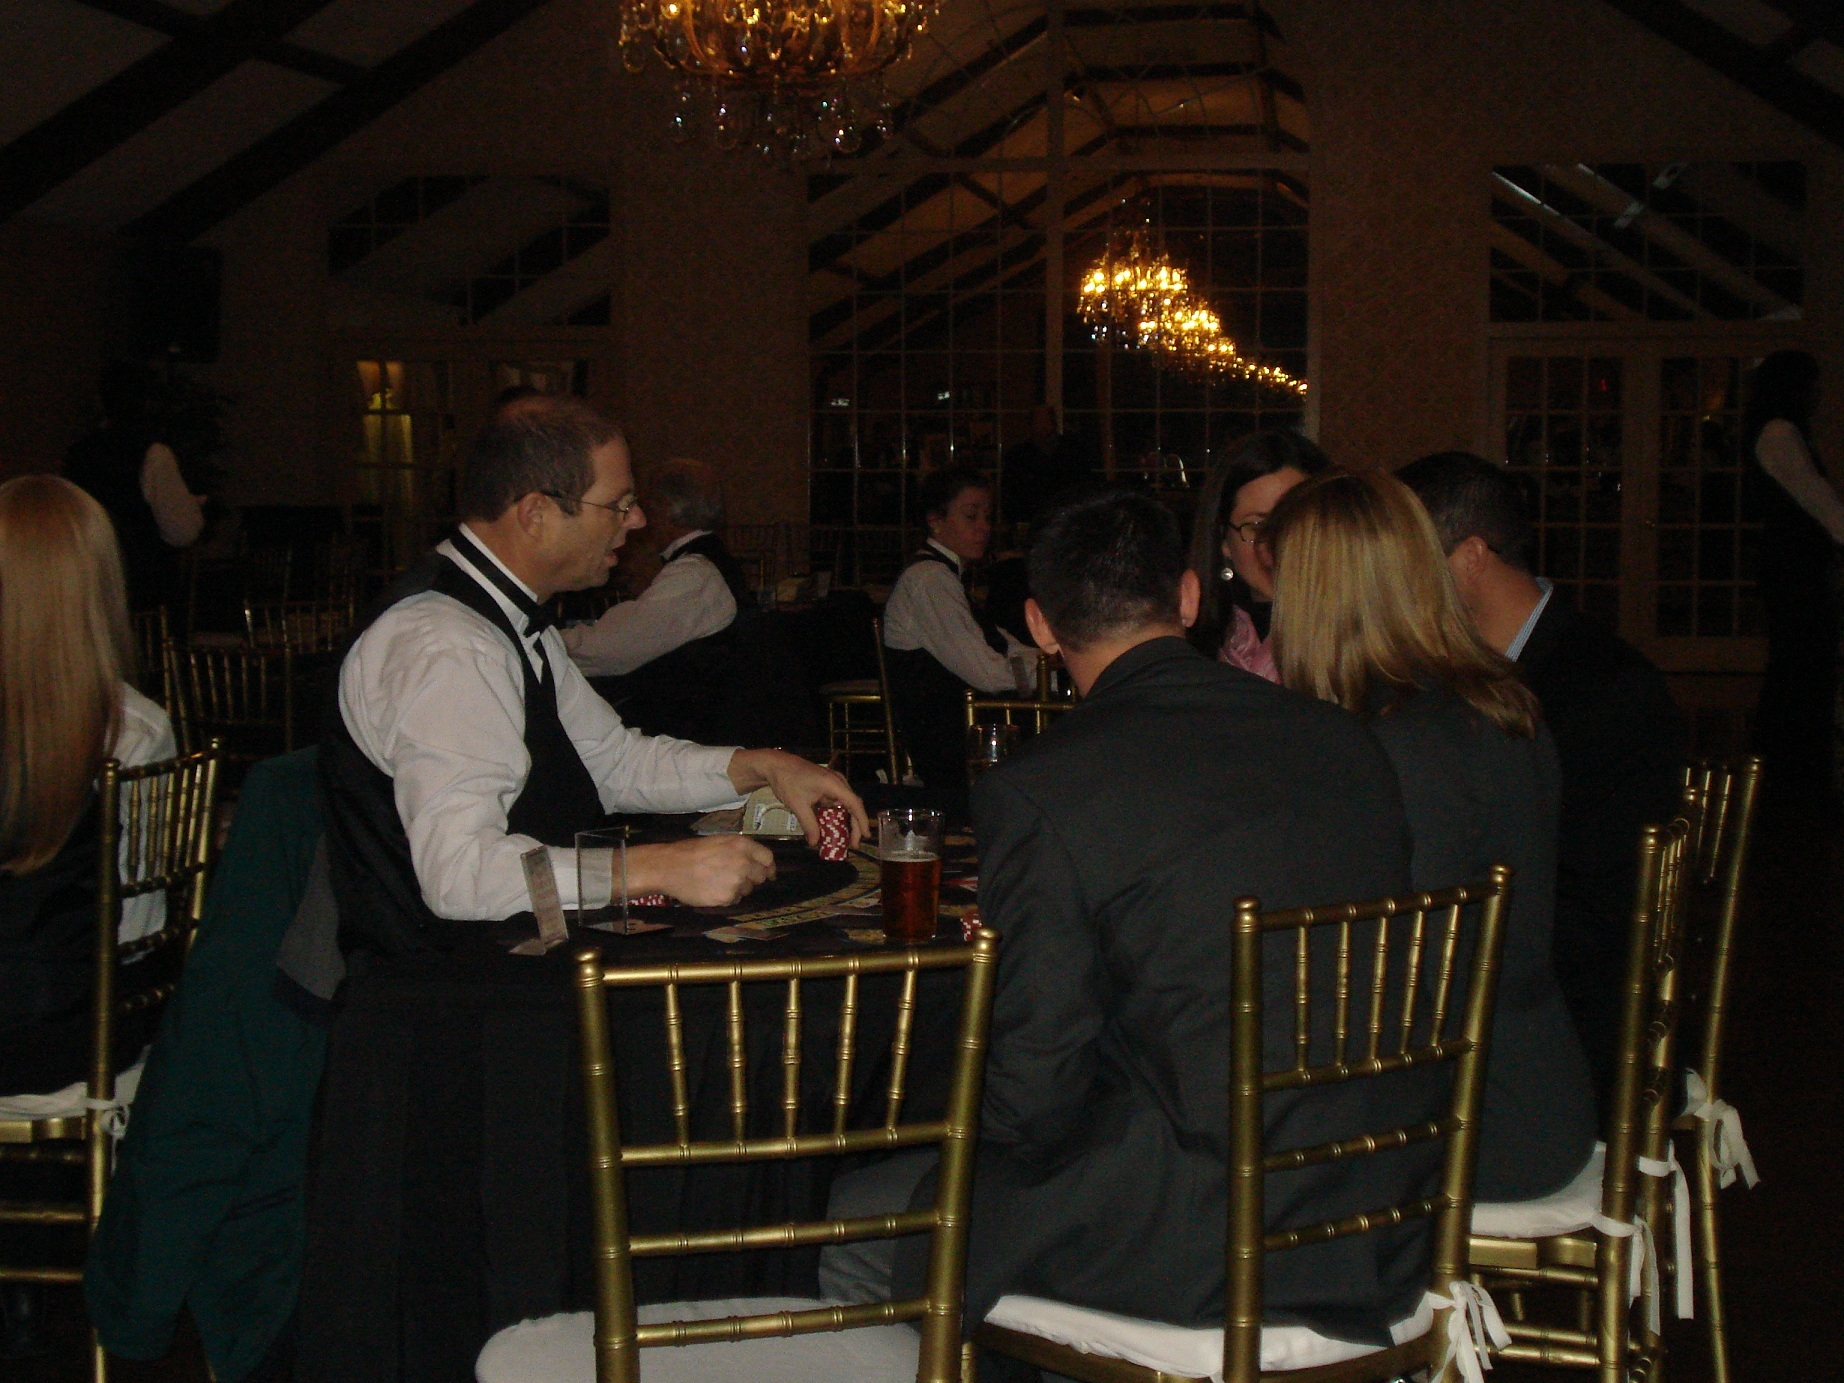 441e0c2cabddb7420acf_Casino_Night_007.JPG